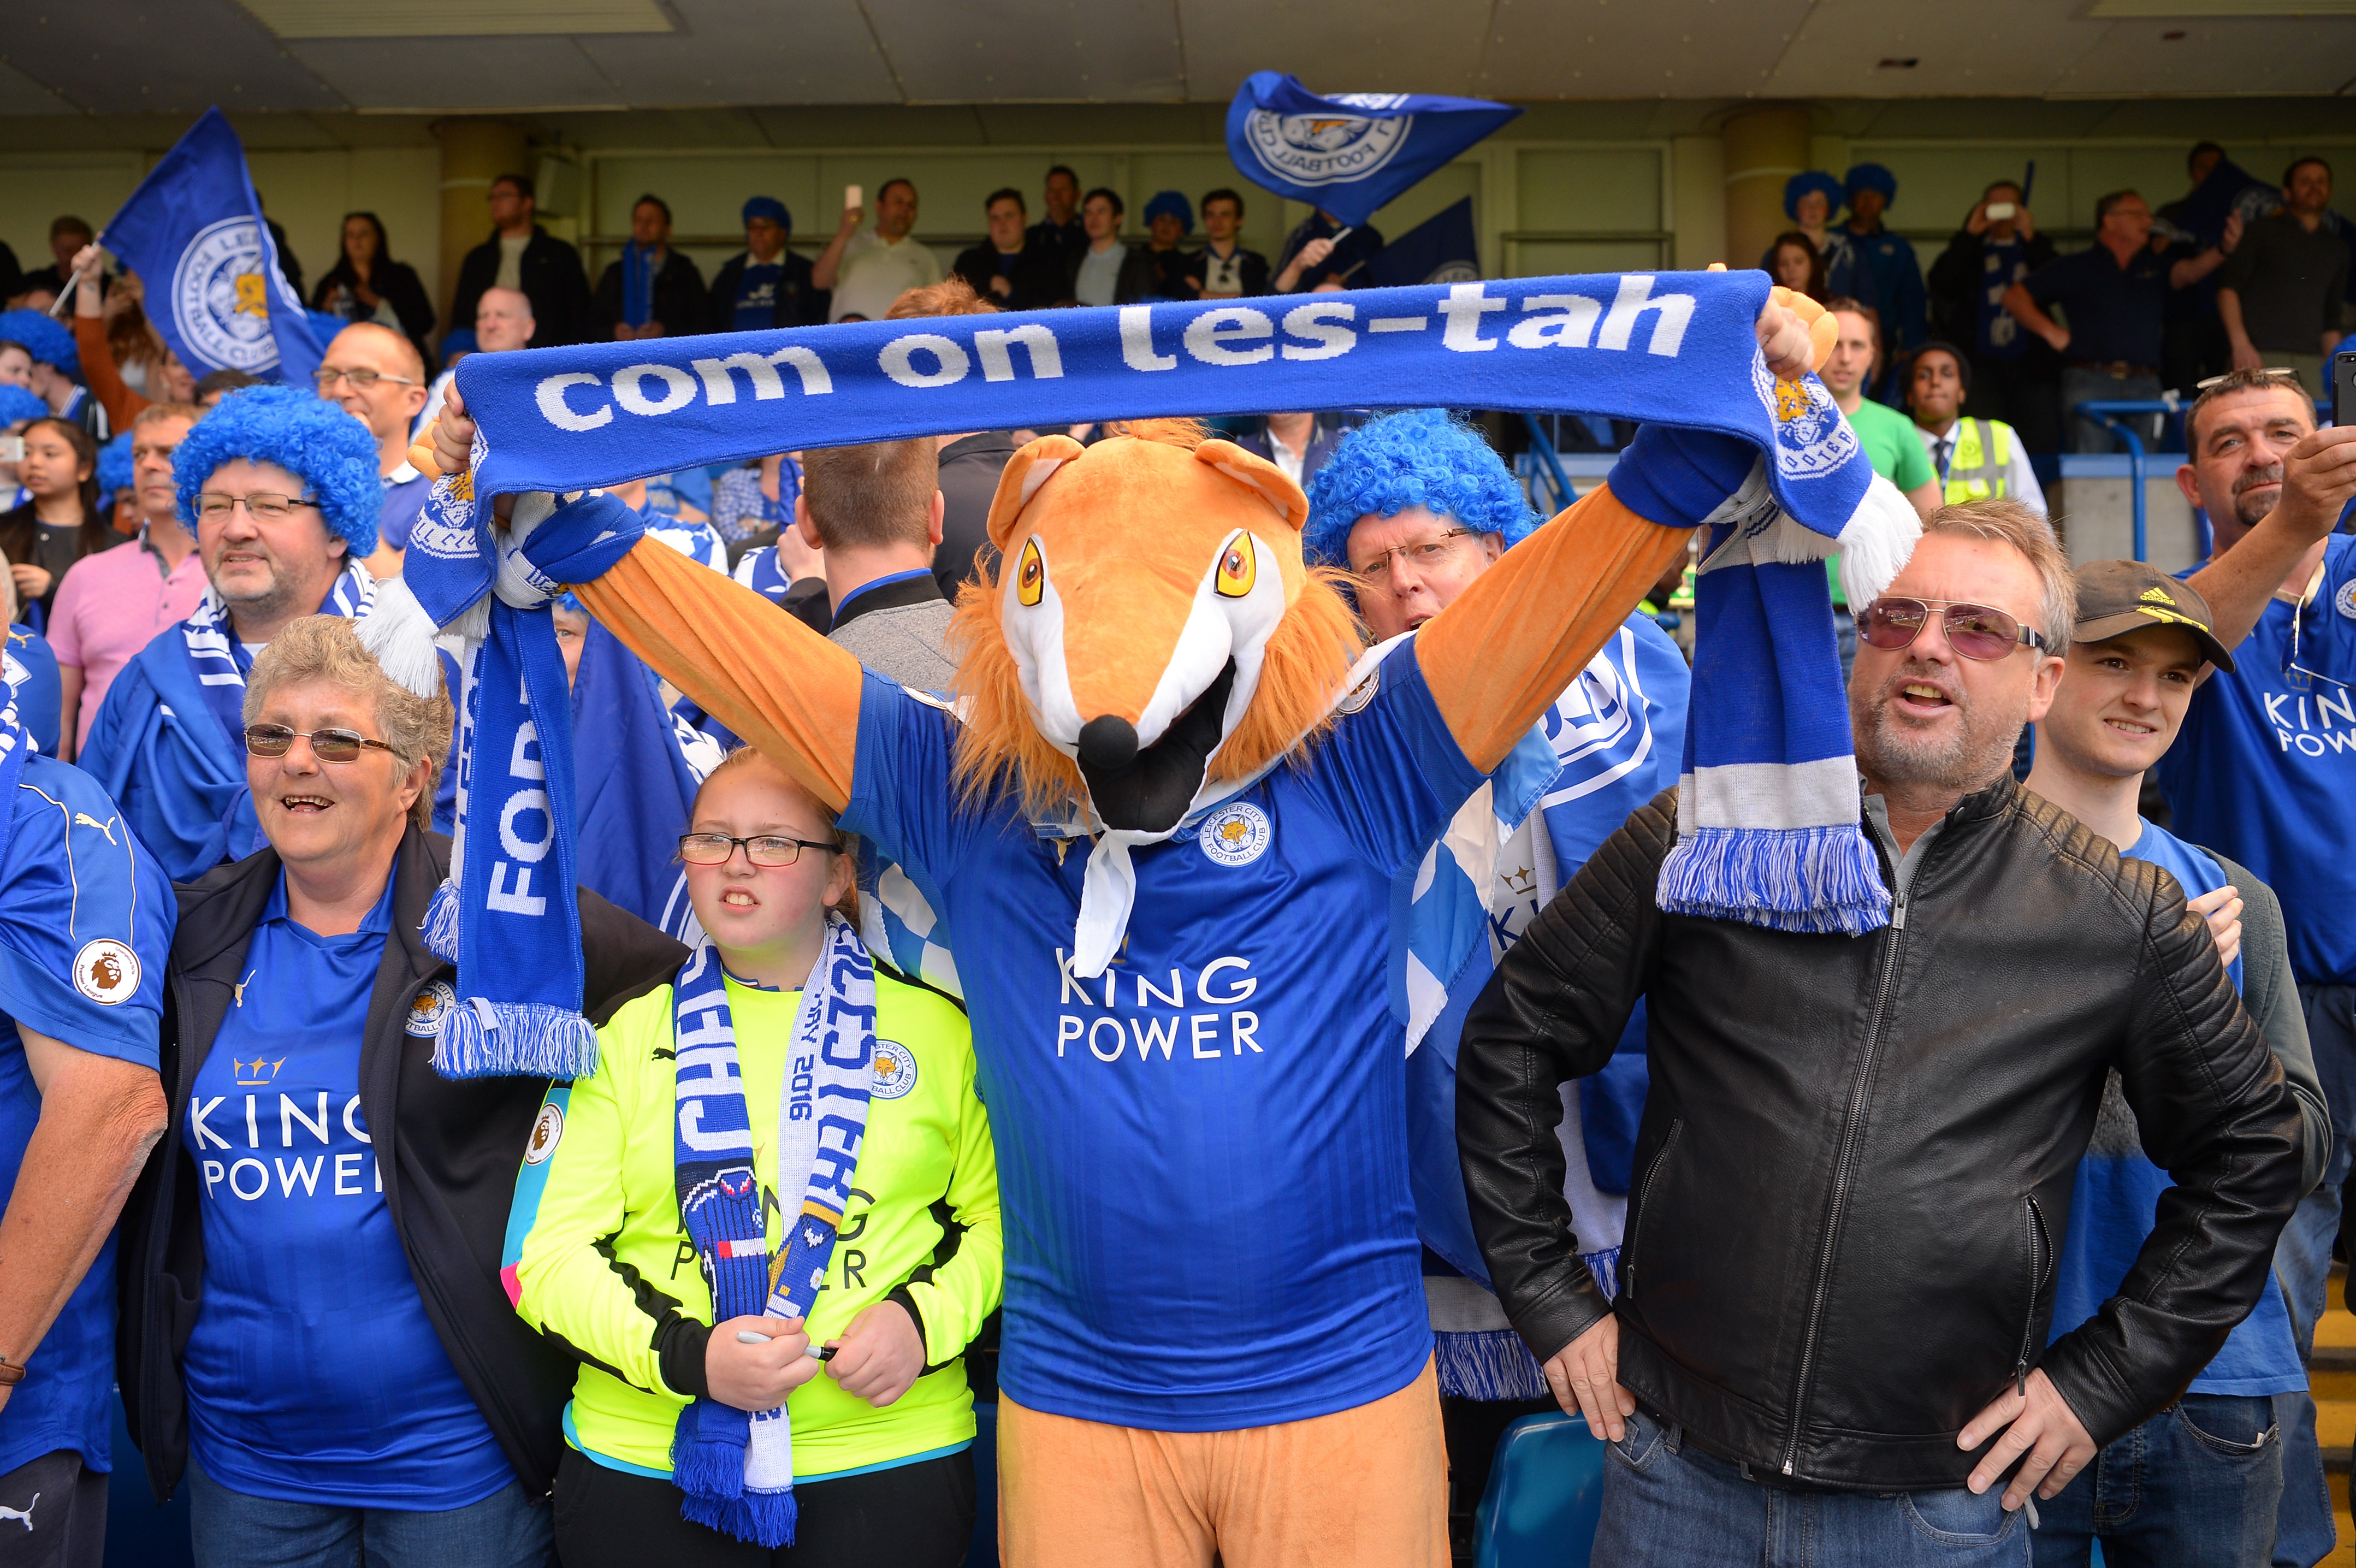 We've enjoyed Leicester City's title for 2 weeks. Now it's time for baseless rumors and getting ahead of ourselves!